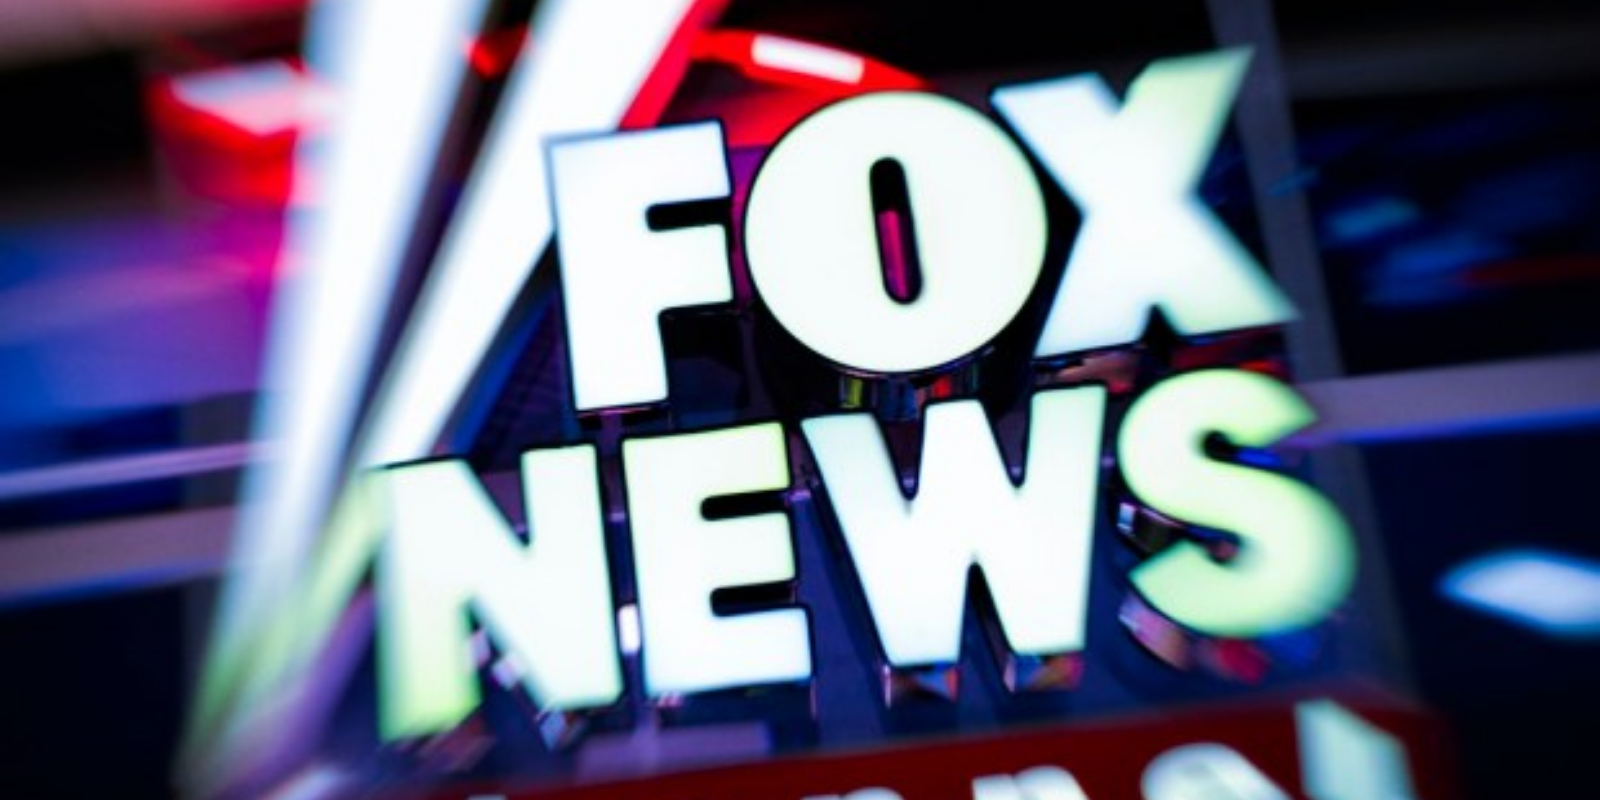 FOX News dominates in ratings, CNN and MSNBC continue to falter